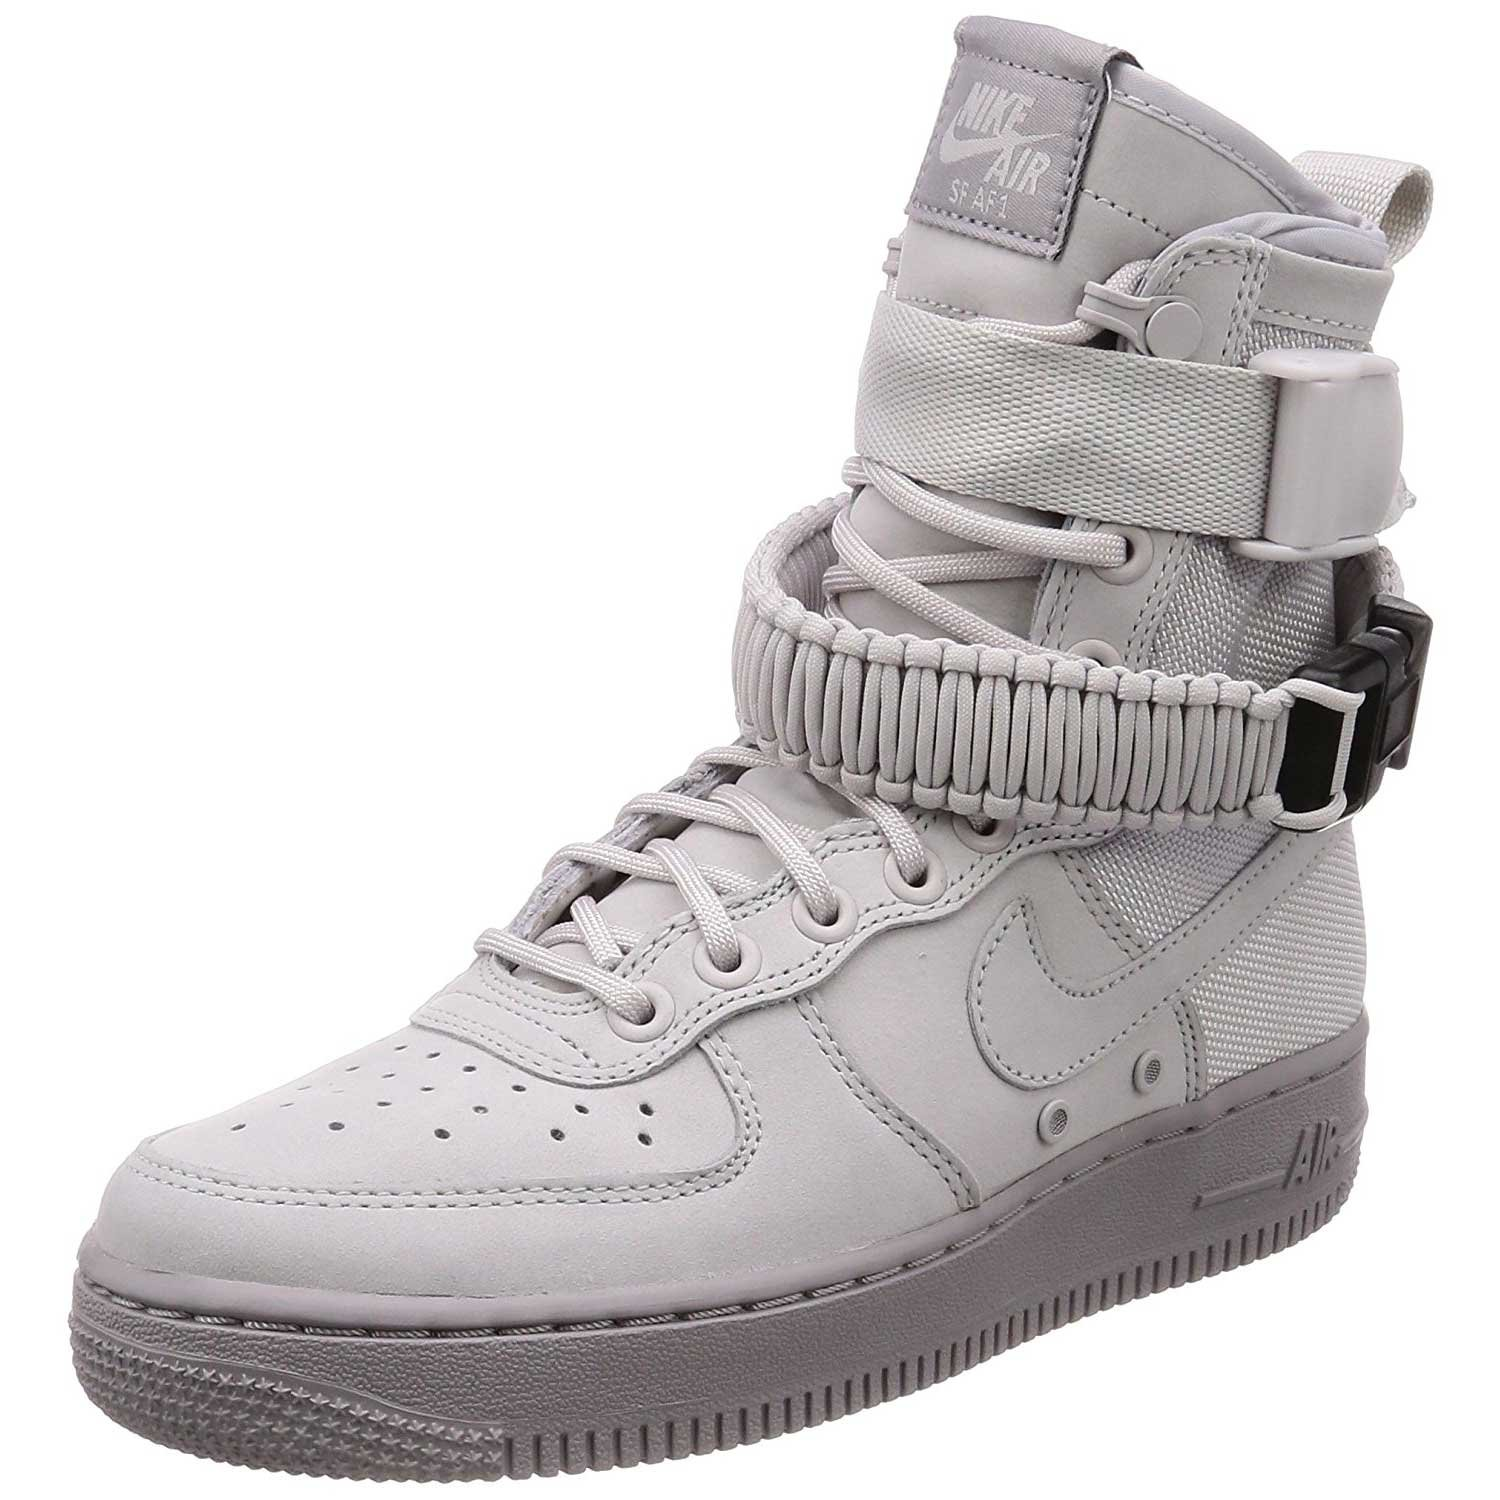 NIKE Women's SF AF1 Casual Shoe Grey/Atmosphere B078P2FKS8 9 B(M) US|Vast Grey/Atmosphere Shoe Grey a8e687